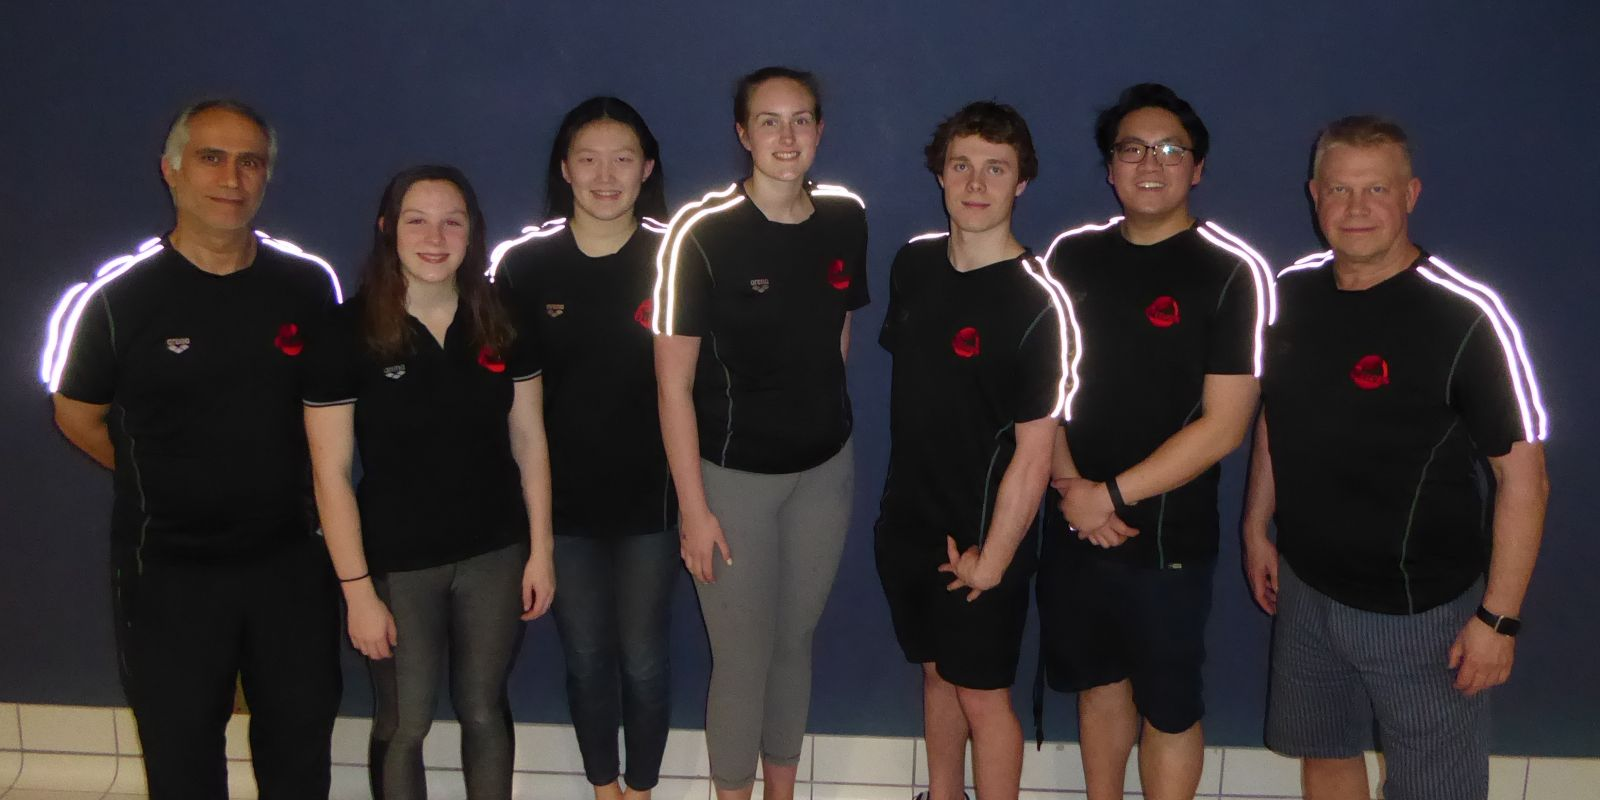 West Vancouver Otters Swim Club Coaches Directors